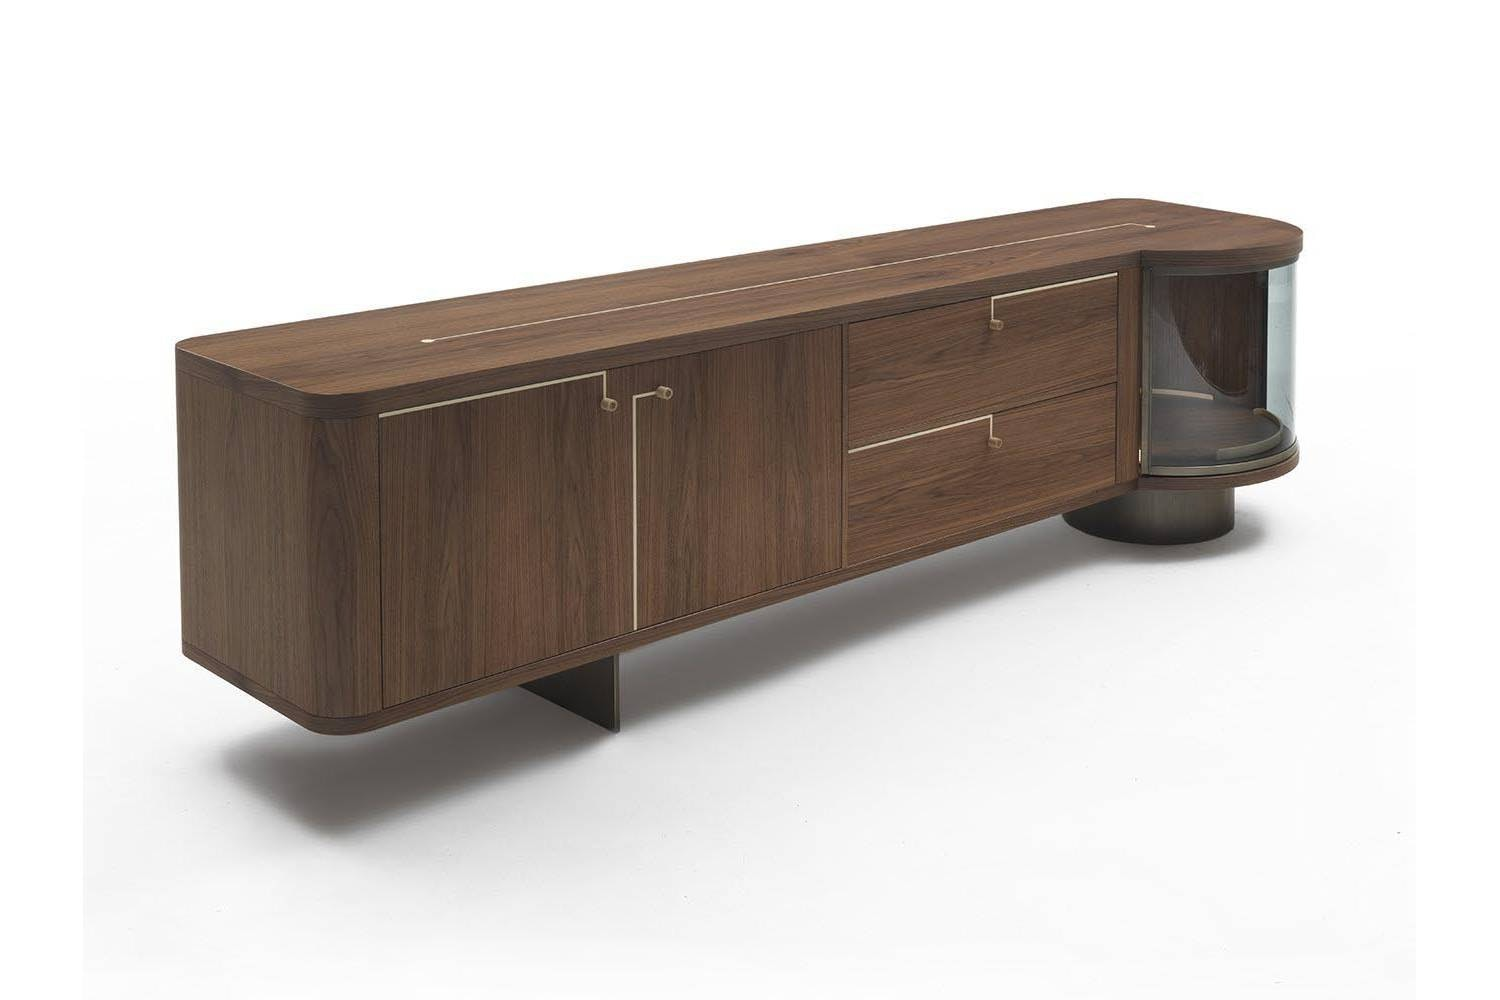 Rondo' Sideboard by U. Asnago for Porada